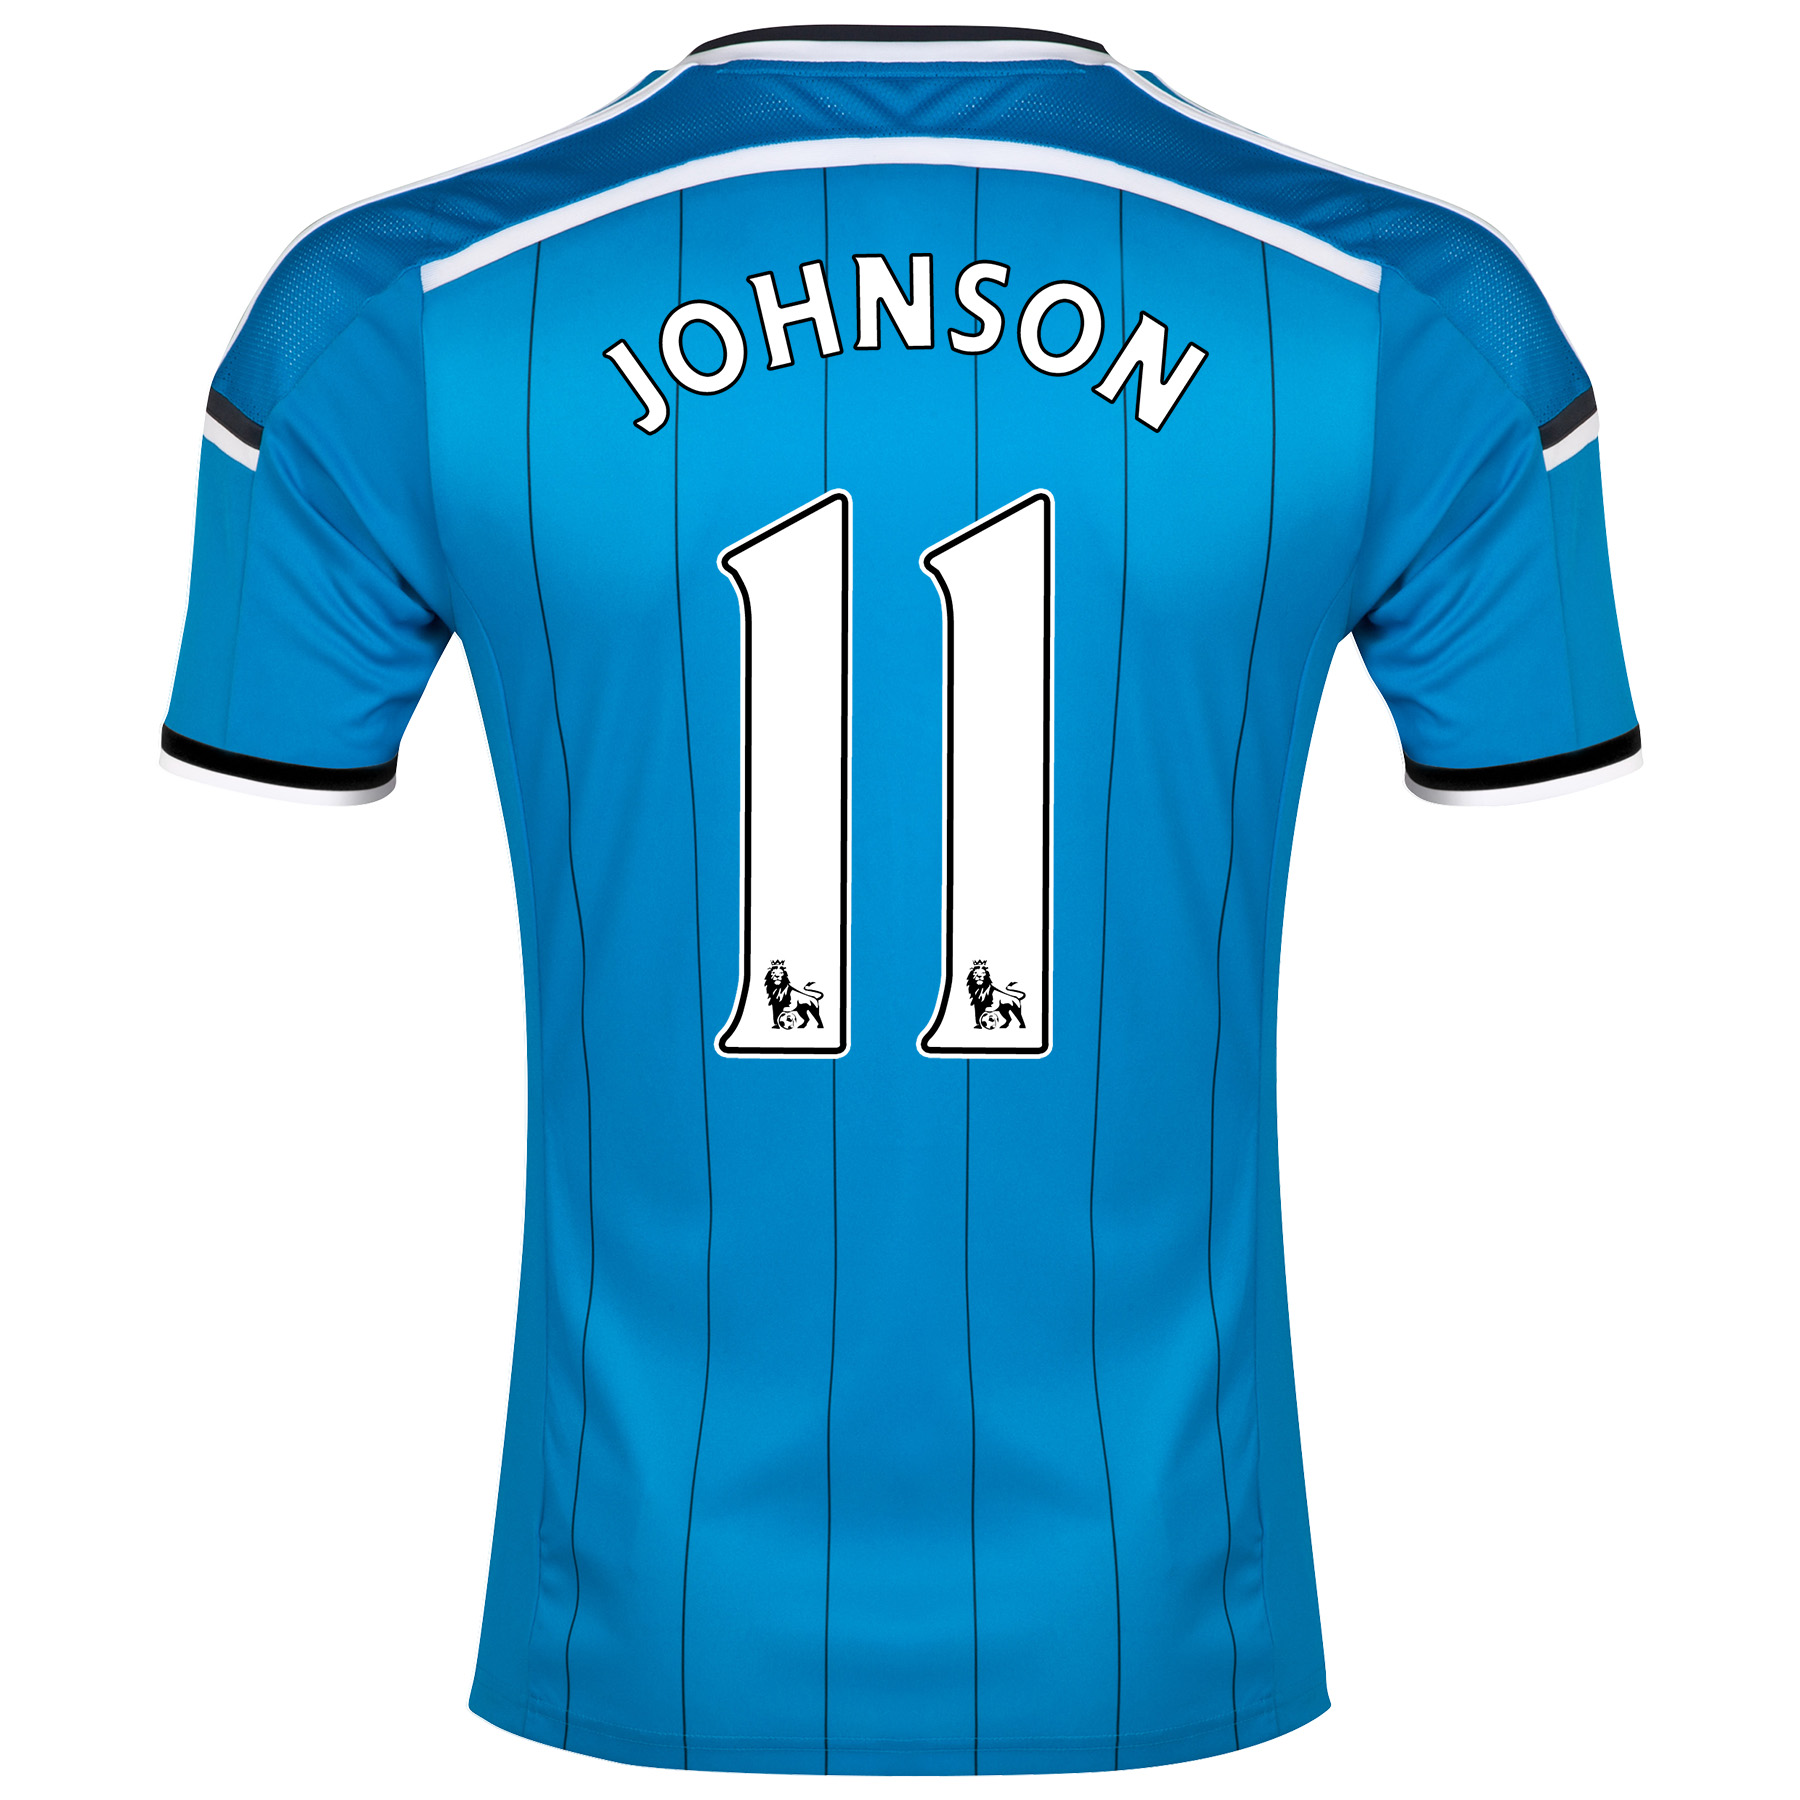 Sunderland Away Shirt 2014/15 Lt Blue with Johnson 11 printing